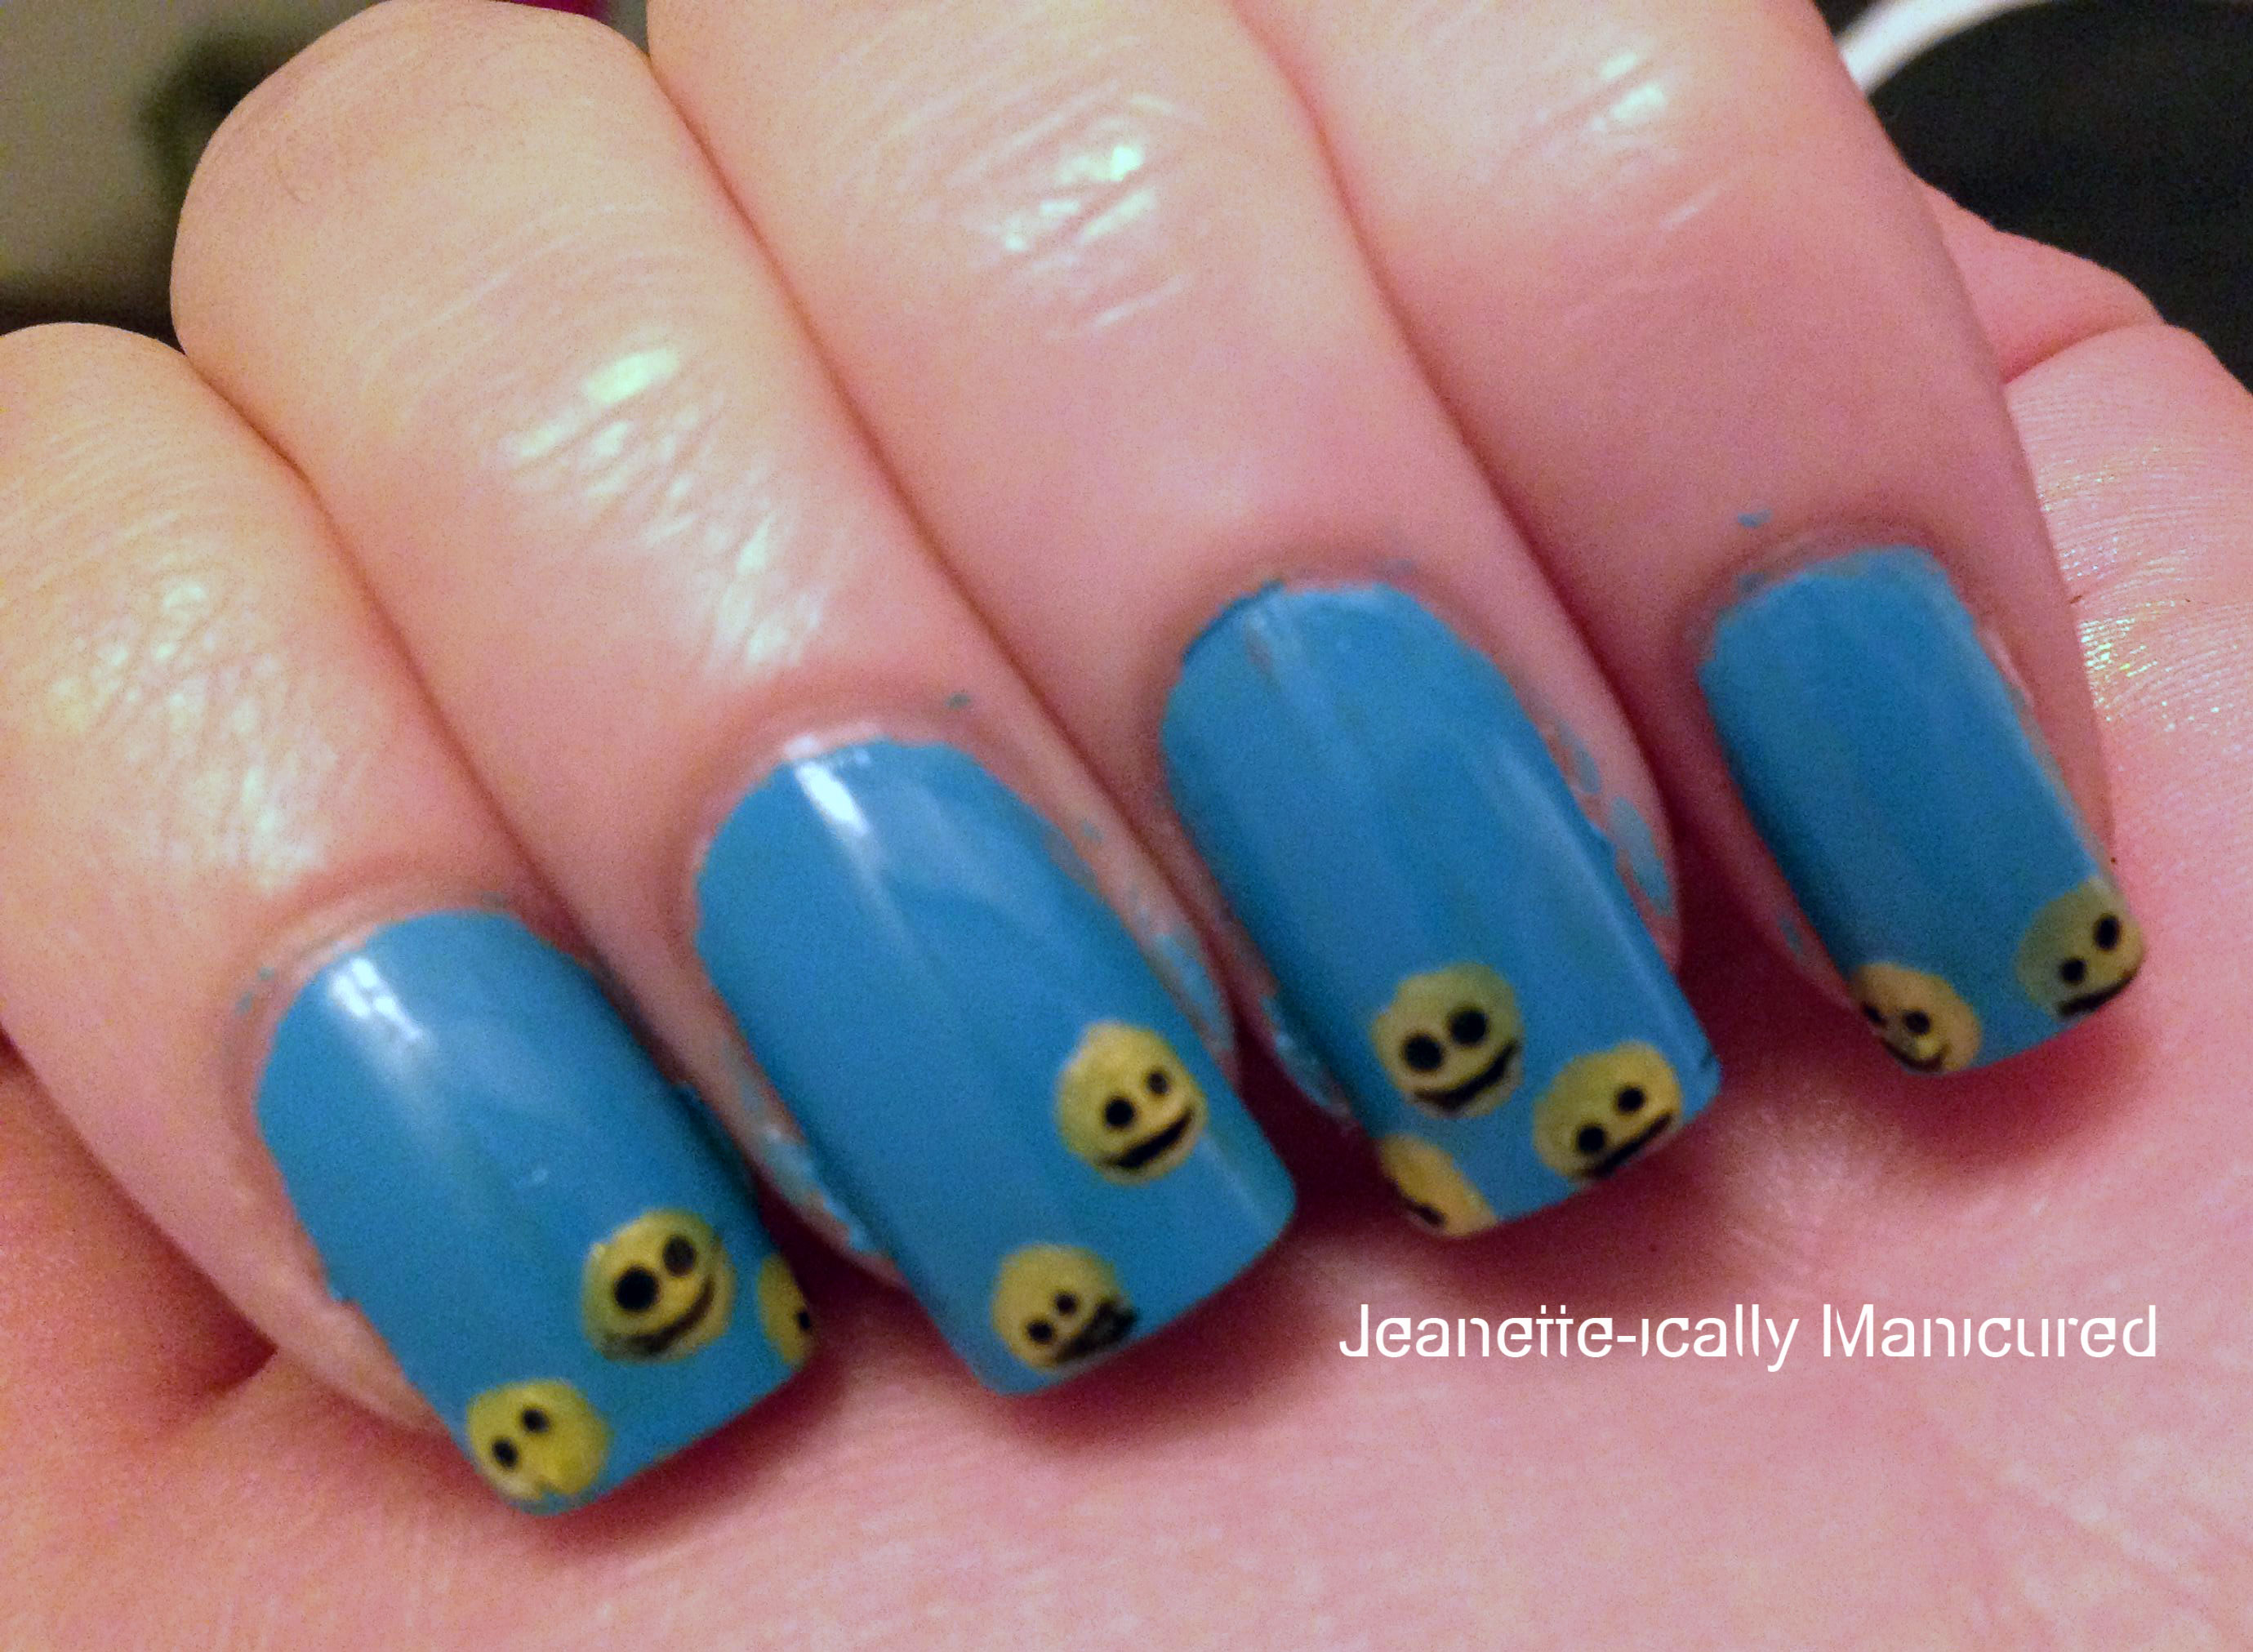 Smiley-face-manicure